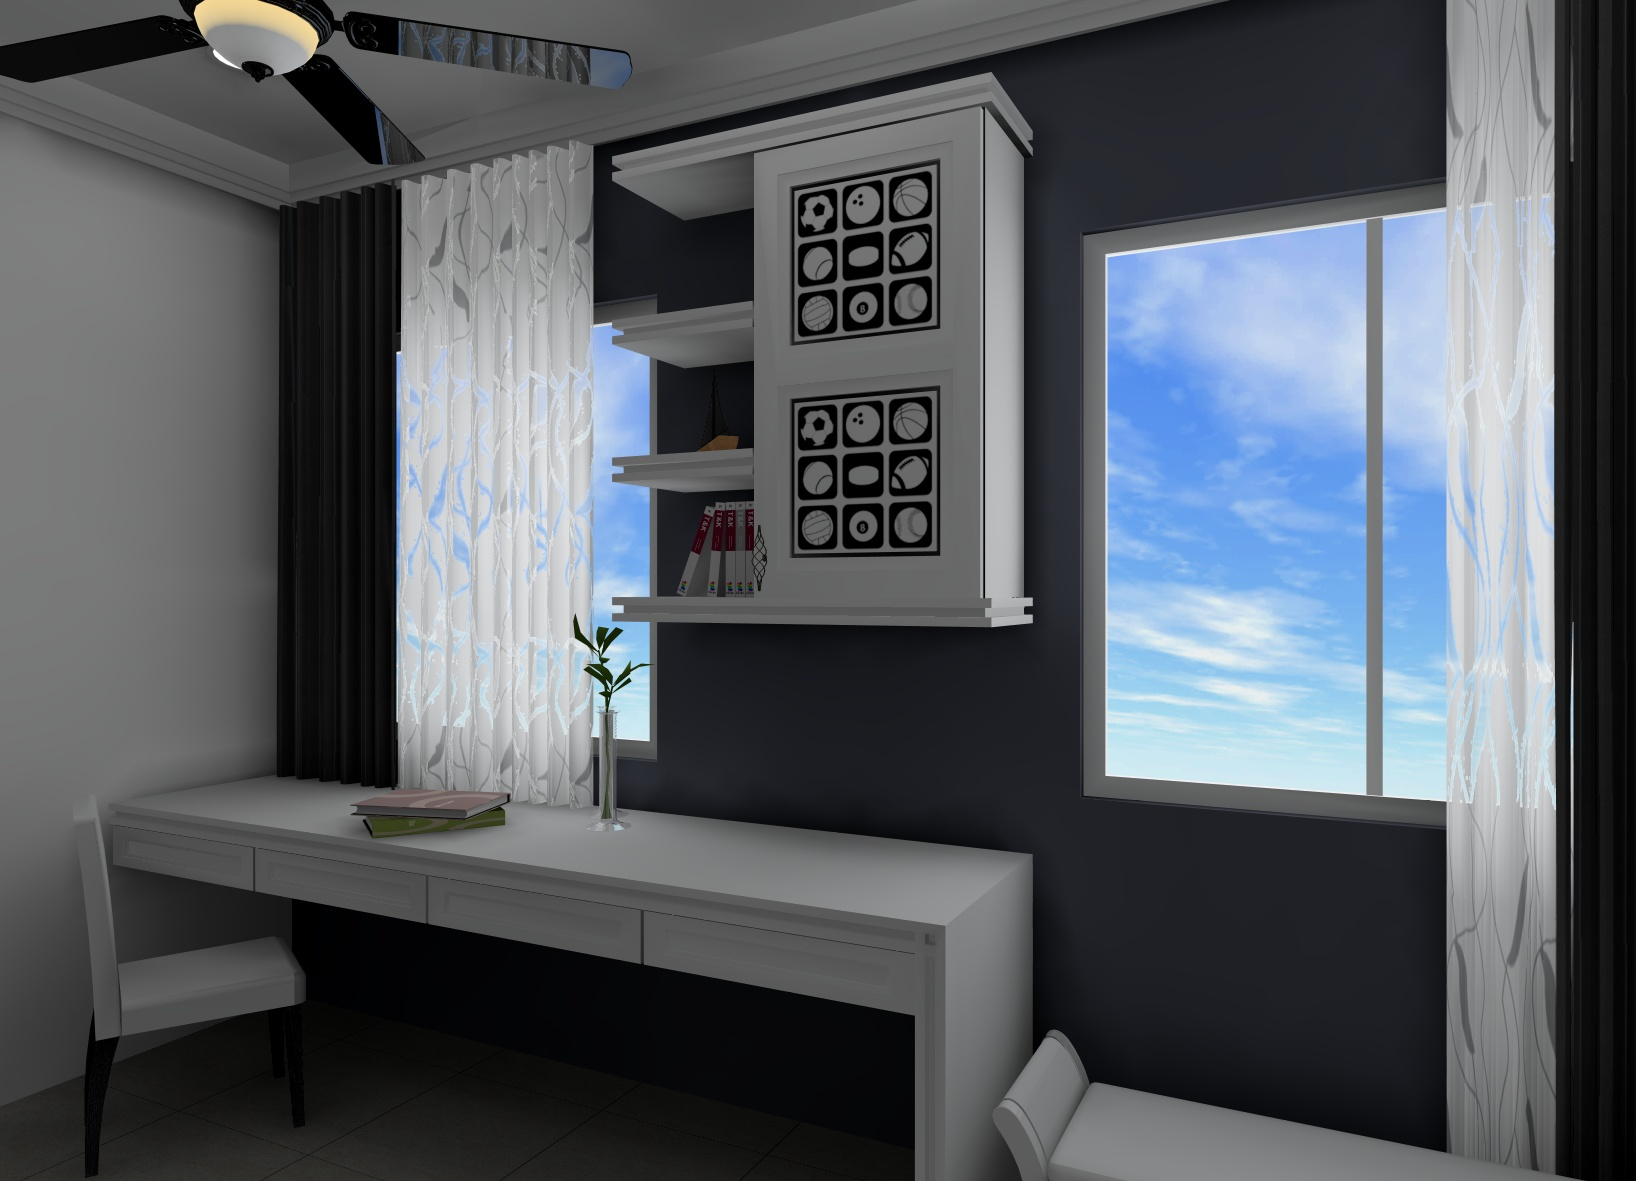 The Reasonable Pricing. Our Interior Designers ...